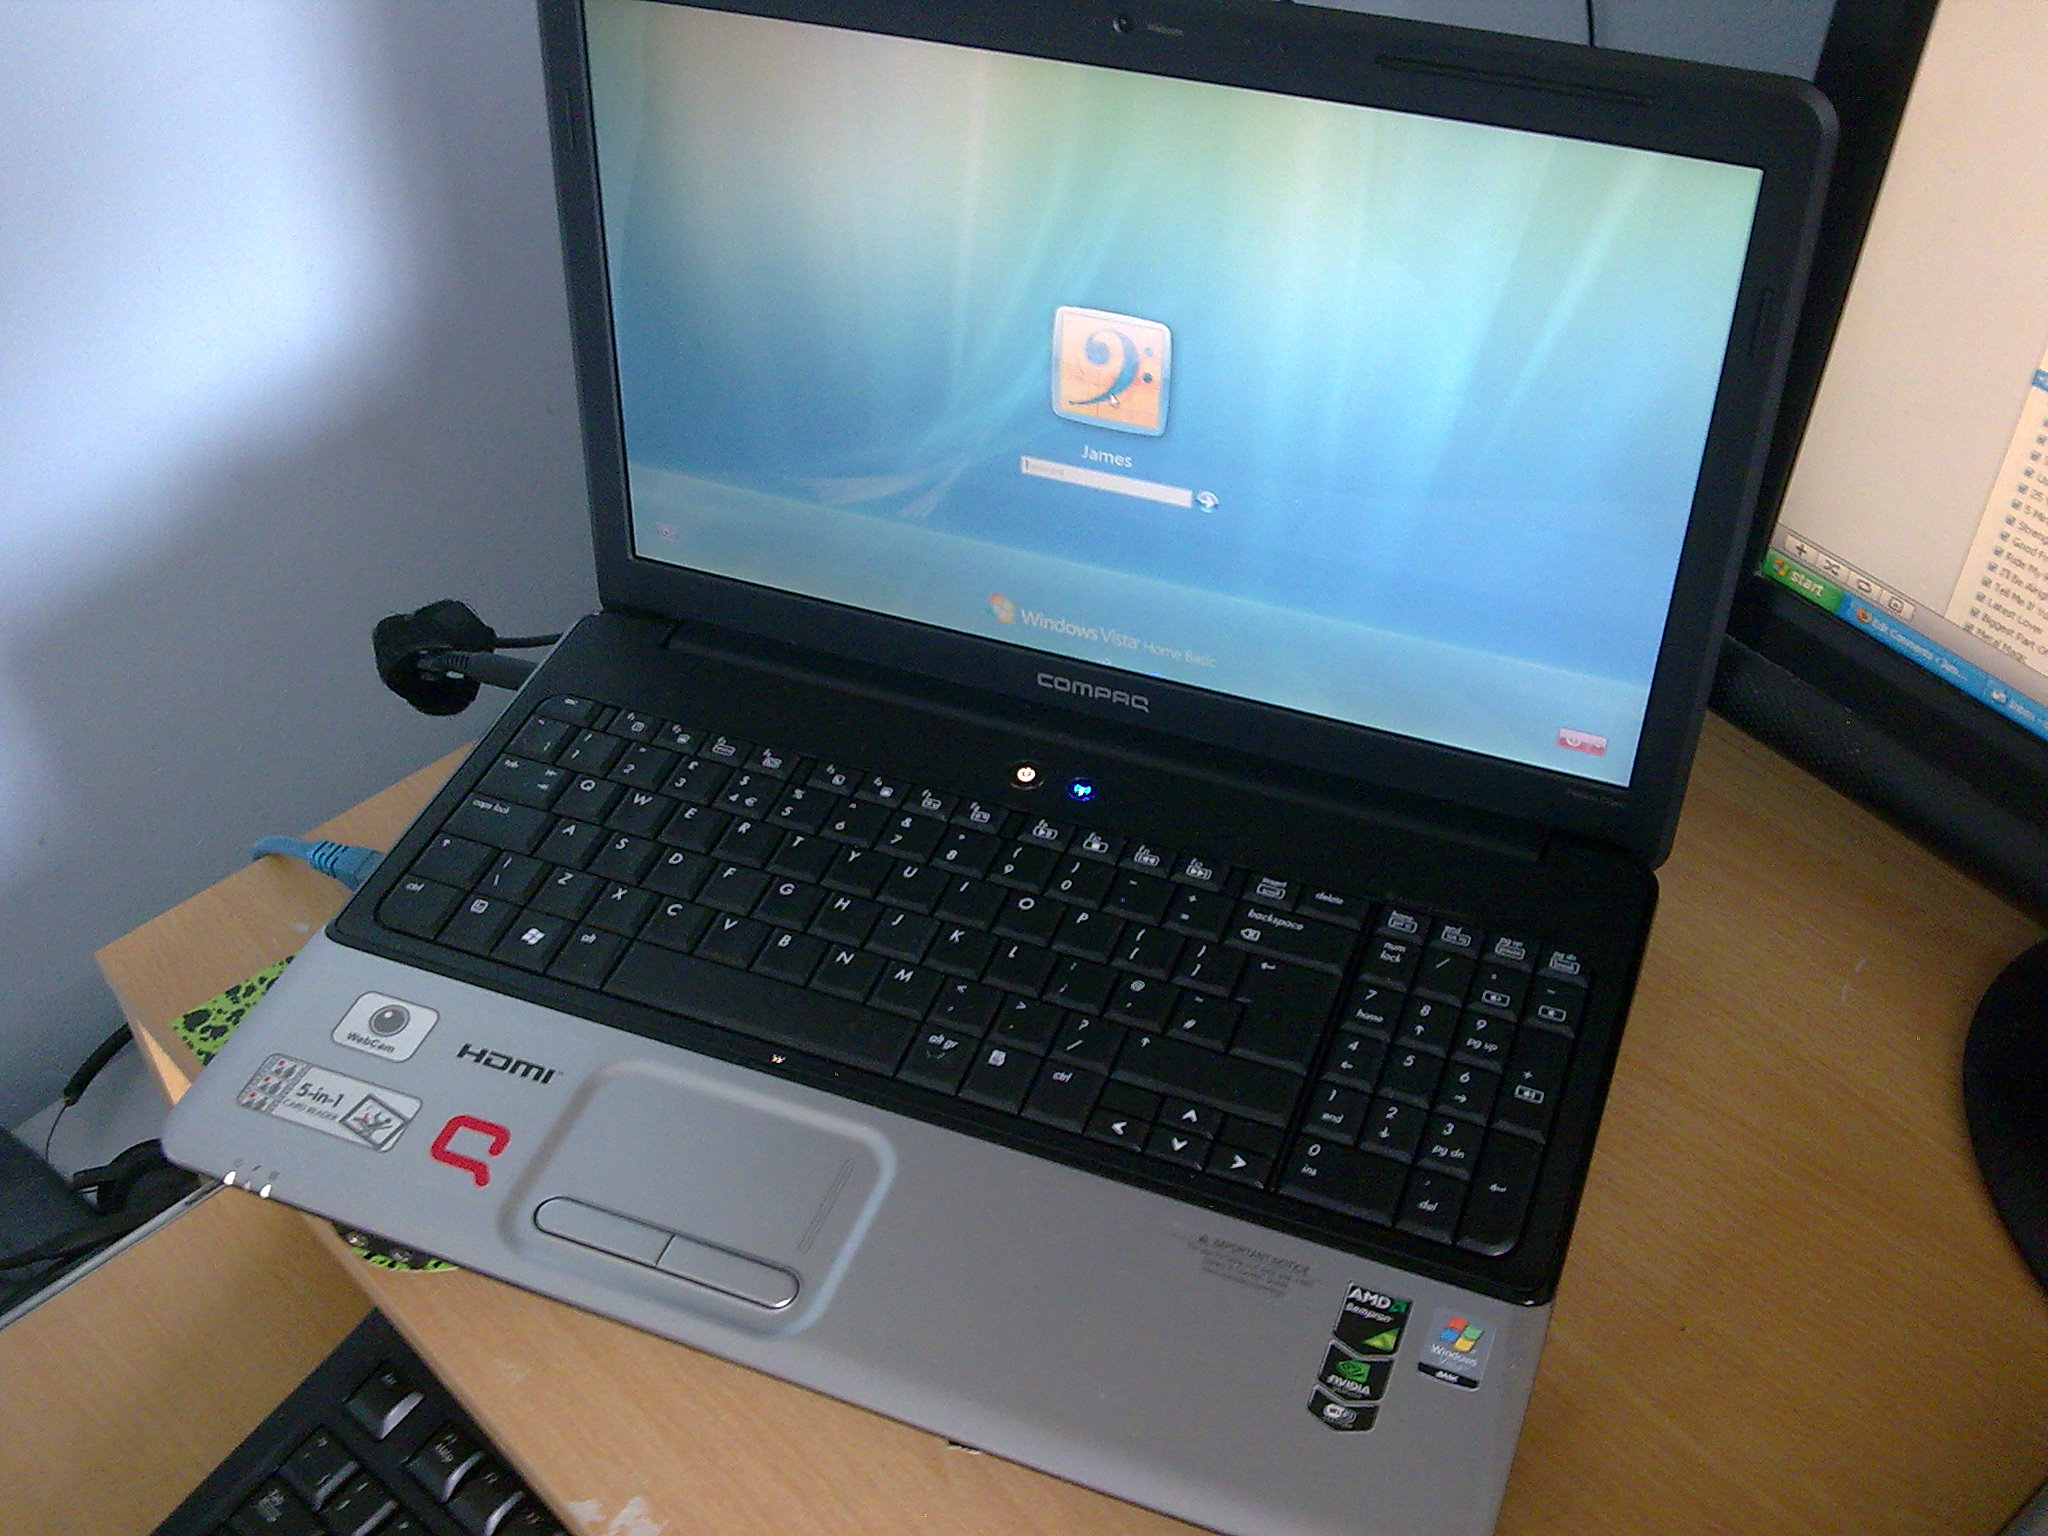 Compaq Presario CQ60 Vista Log on